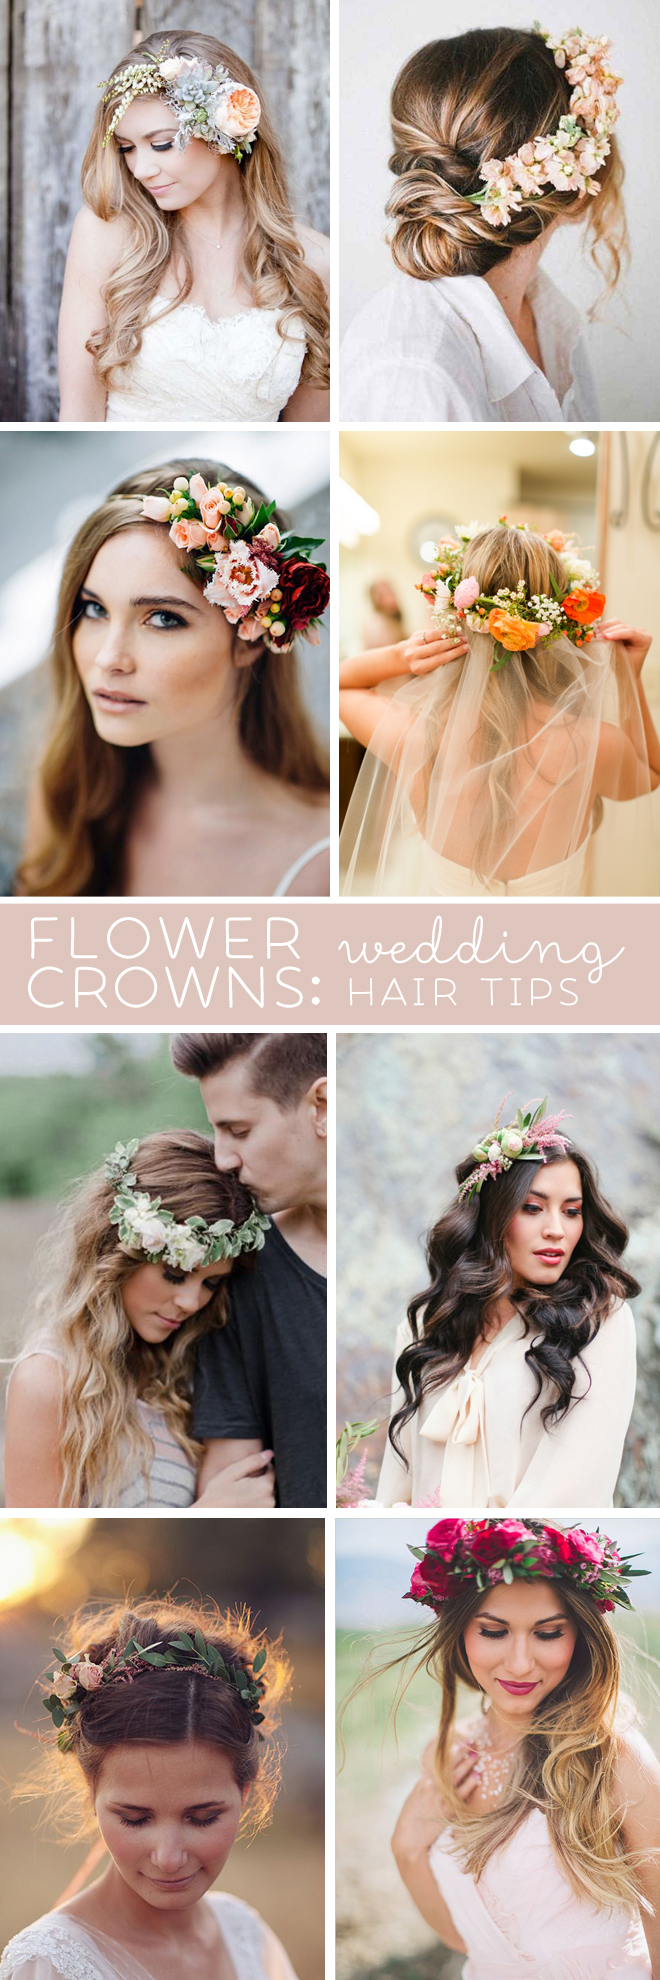 Awesome wedding hair tips for wearing flower crowns izmirmasajfo